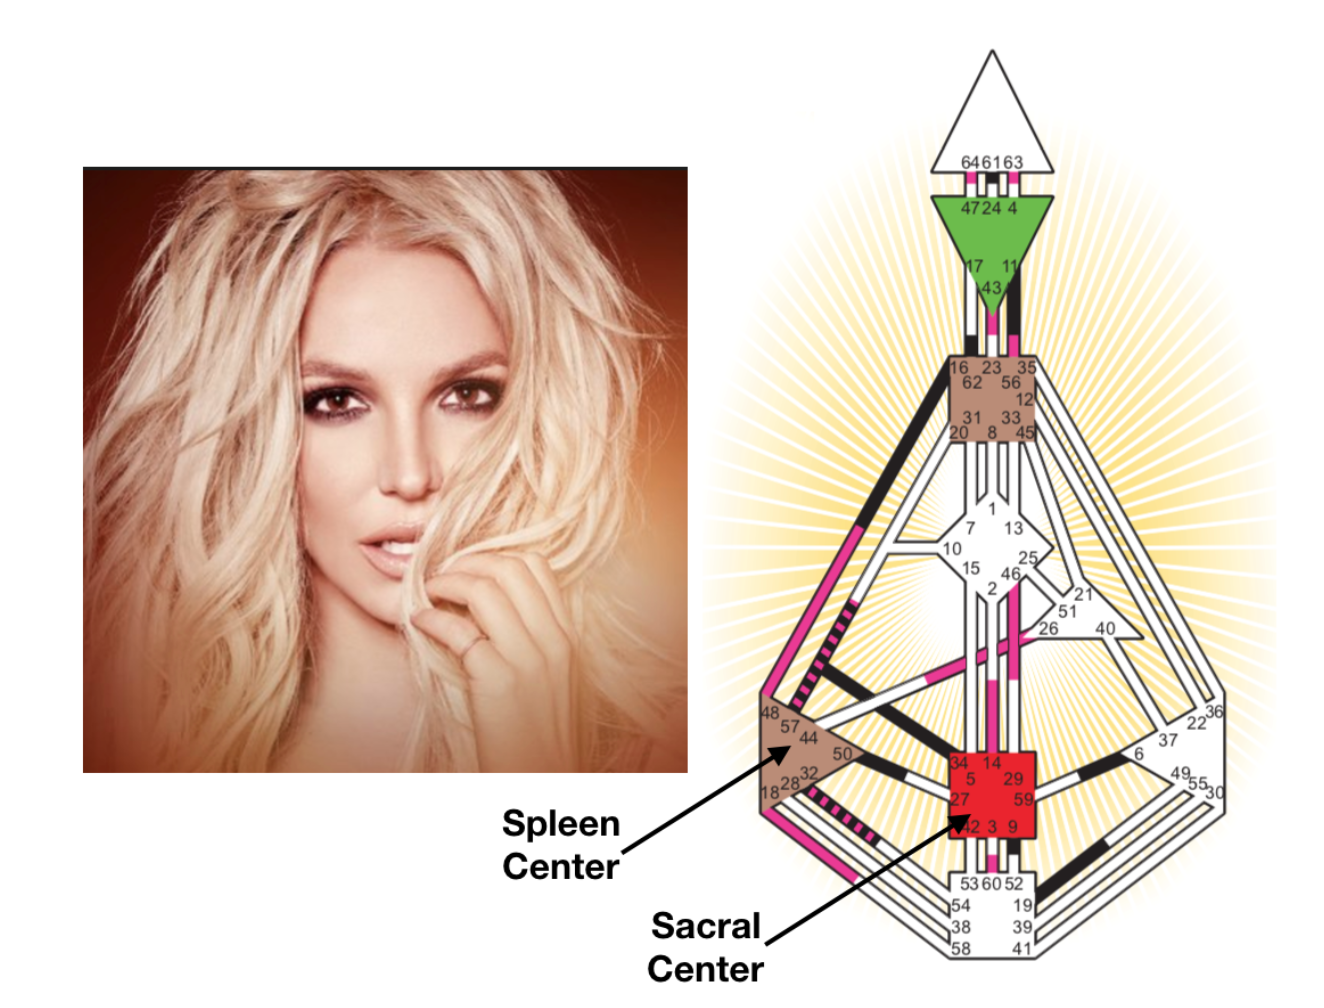 Britney Spears has both a defined (closed) Spleen Center and a defined (closed) Sacral Center.